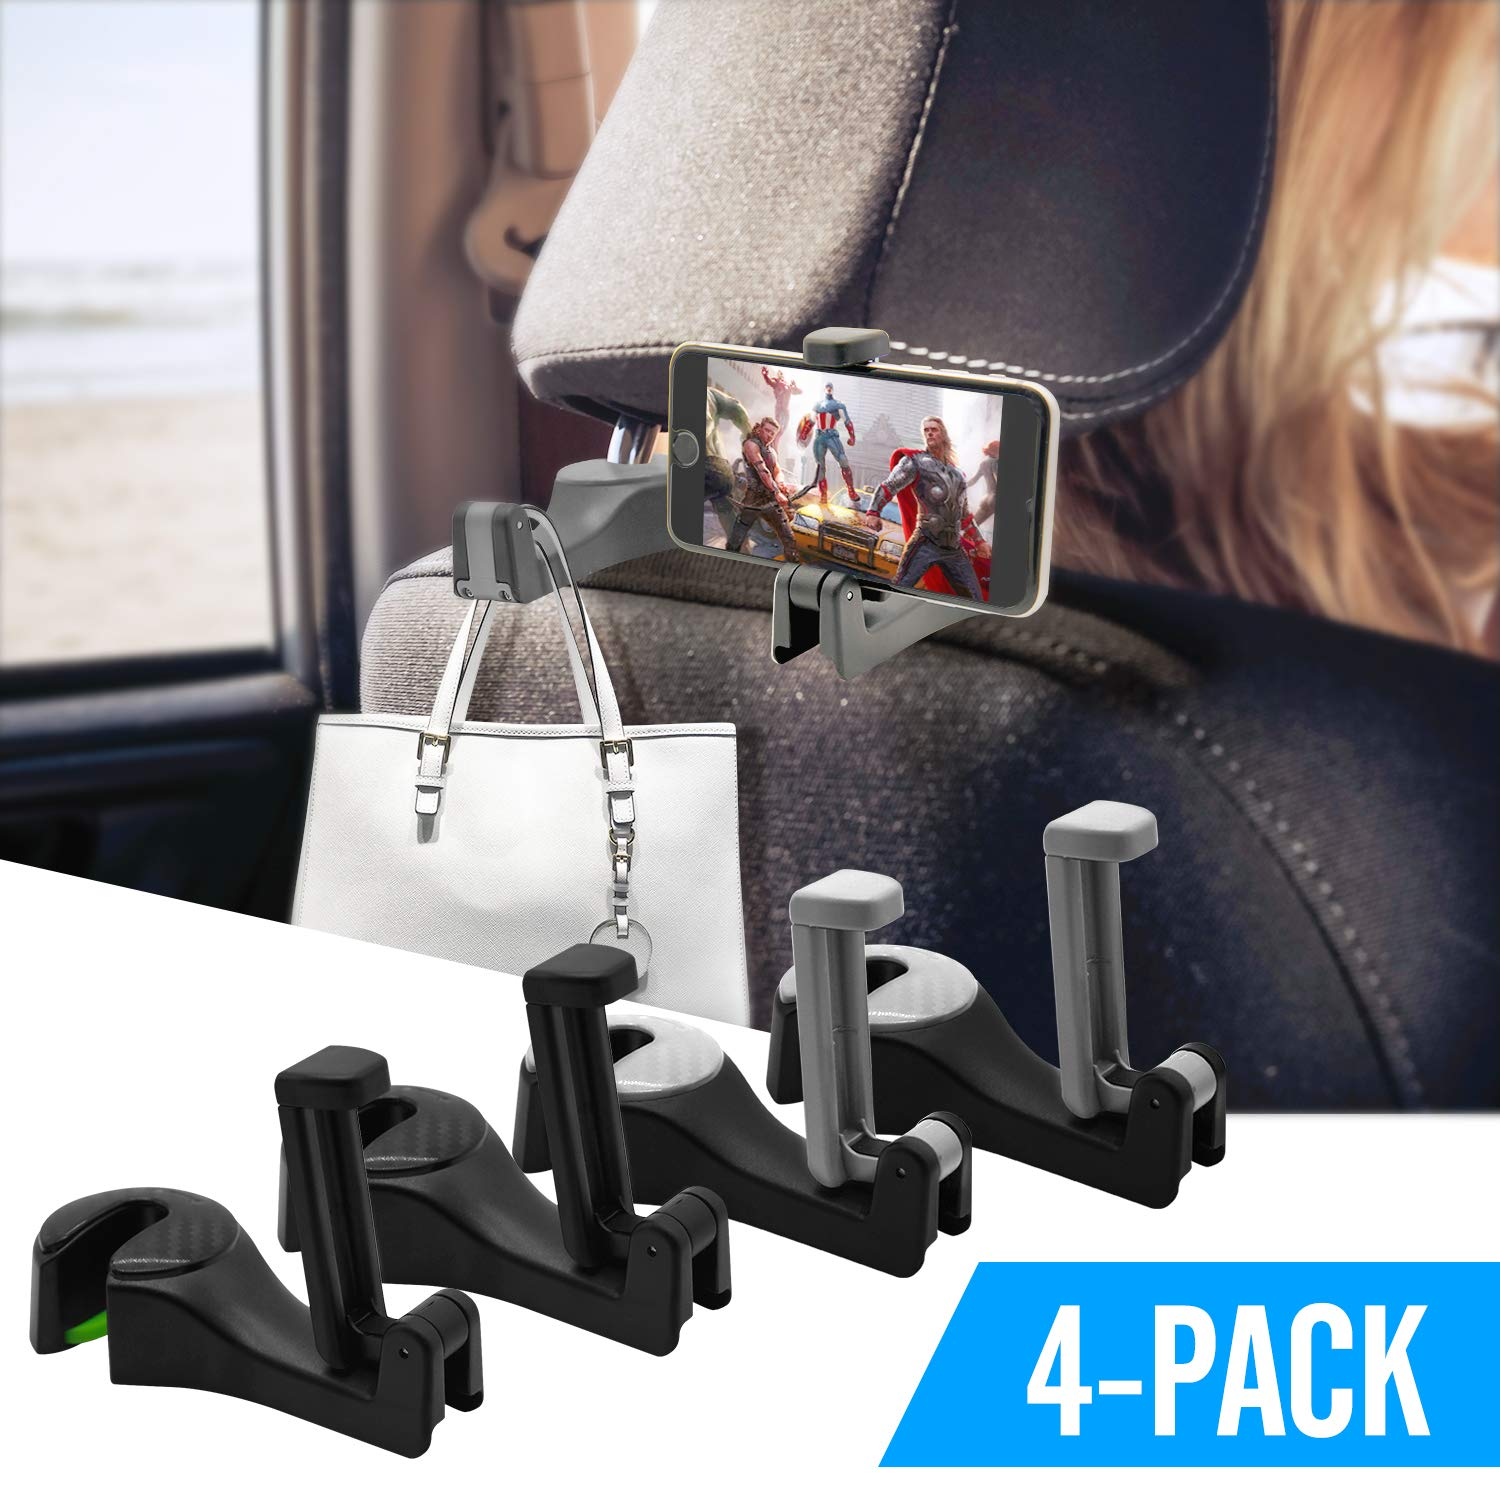 4 Pack Car Headrest Hooks, Rorchio 2 in 1 Universal Car Headrest Hangers Vehicle Back Seat Hidden Headrest Phone Holder for hanging bags, purse, toys and etc.